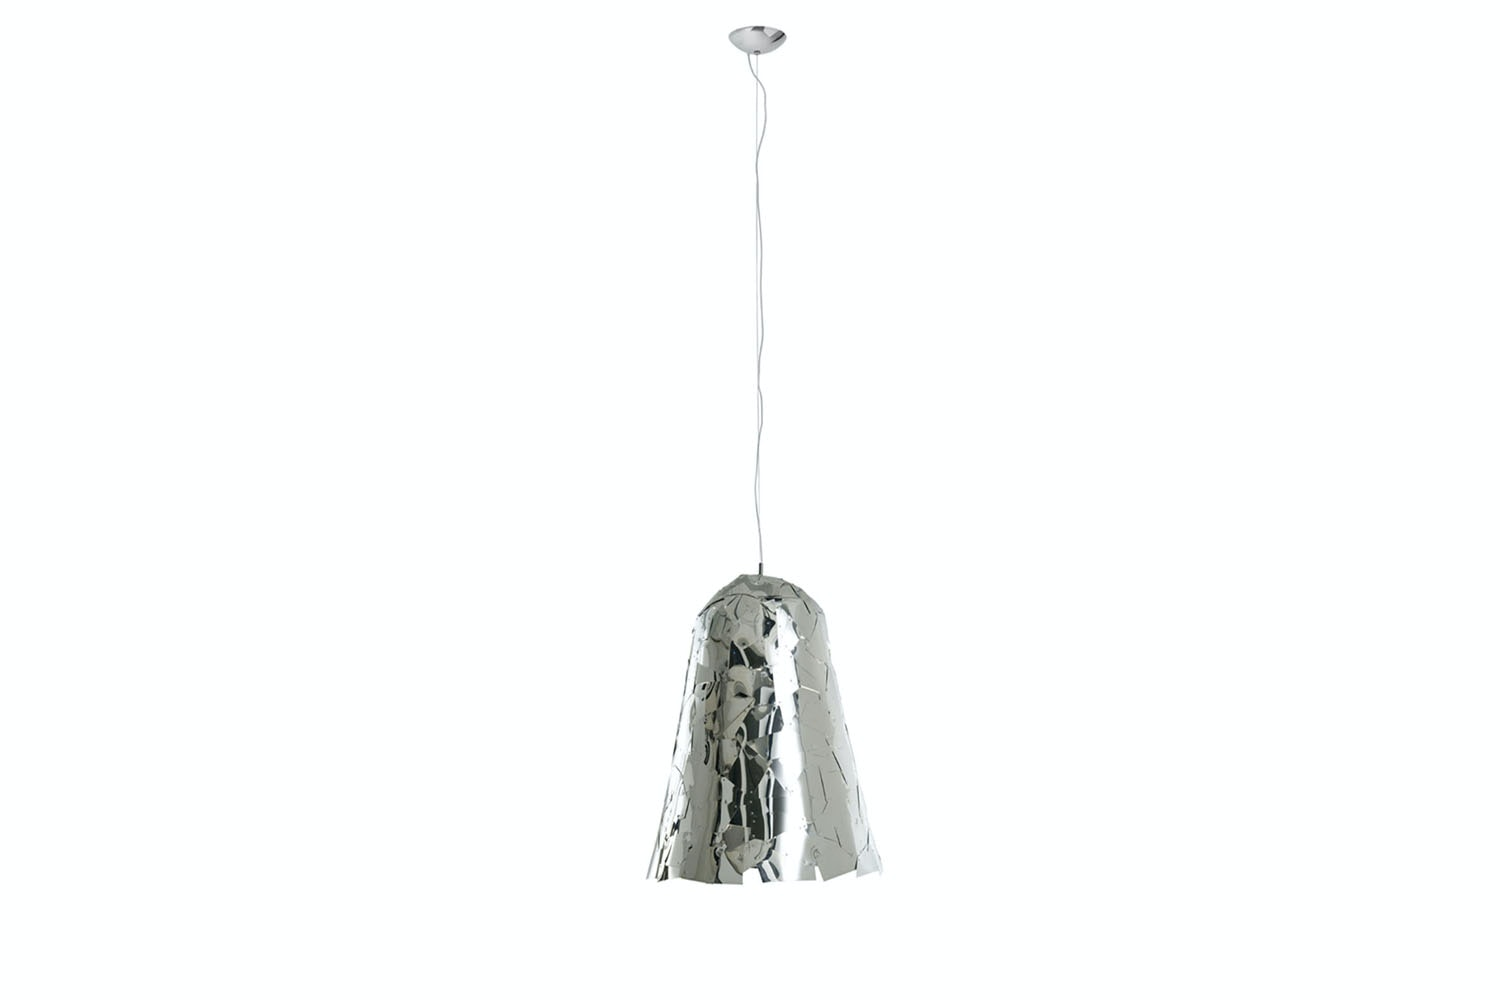 Campana Suspension Lamp by F. e H. Campana for Edra